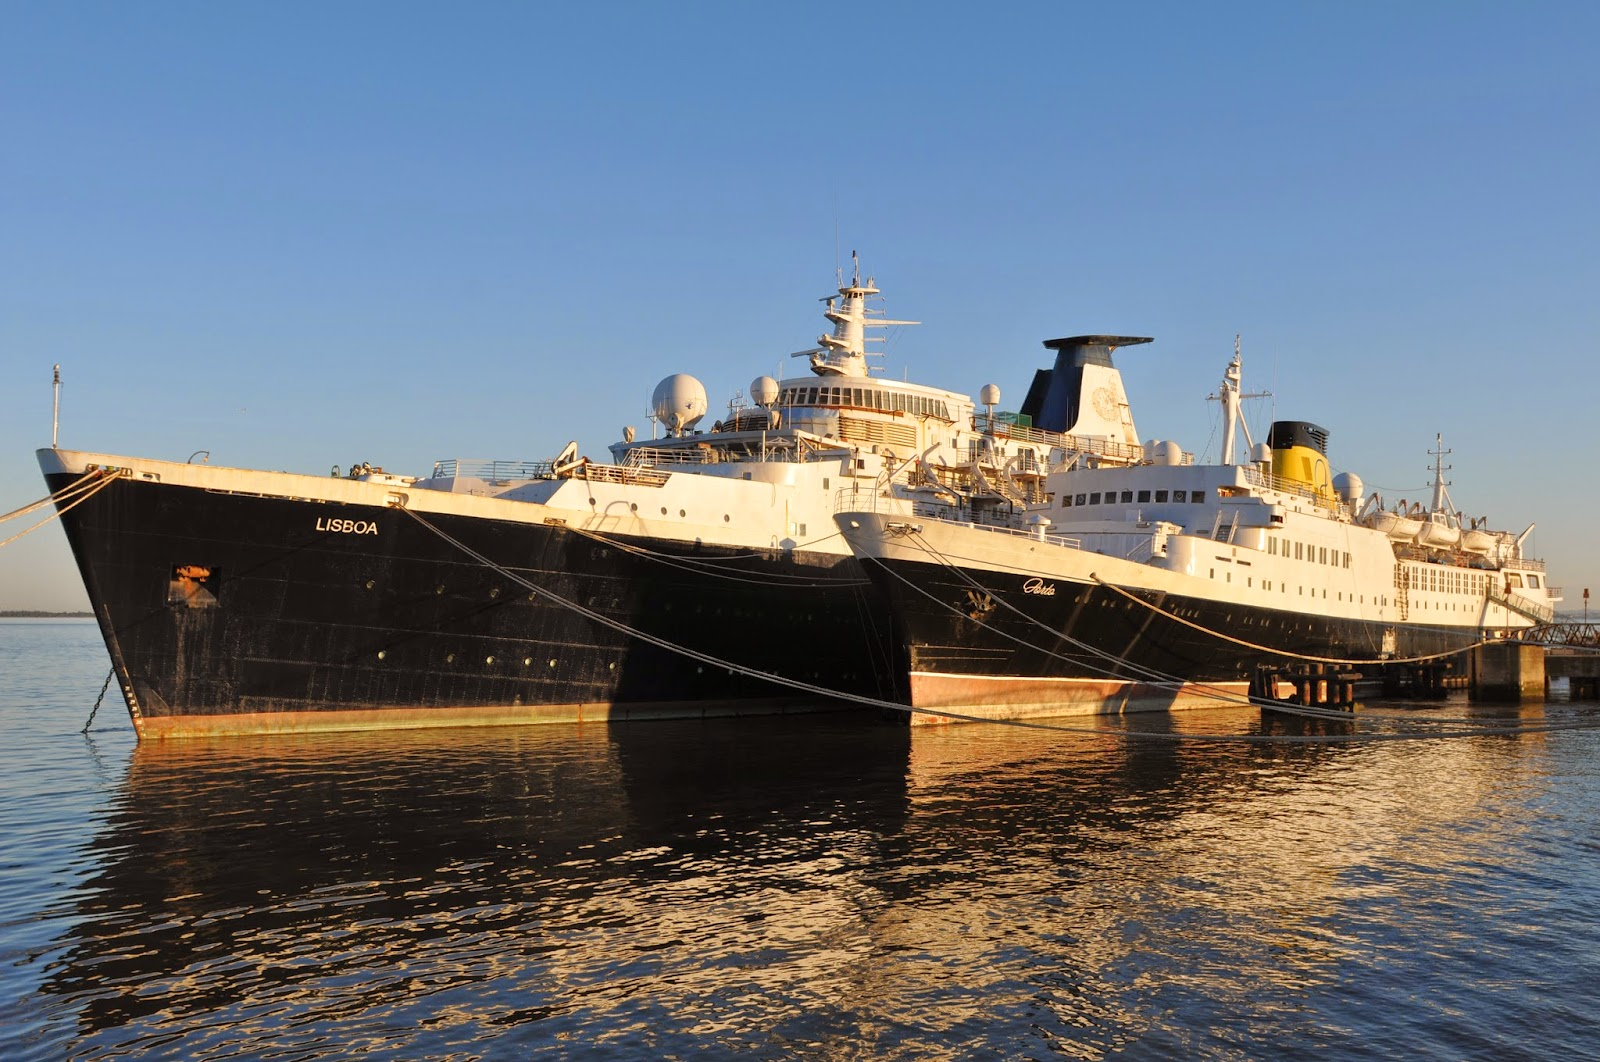 The Portuguese passenger ship LISBOA launched 60 years ago in Belfast as  PORT MELBOURNE b39b4ae499415